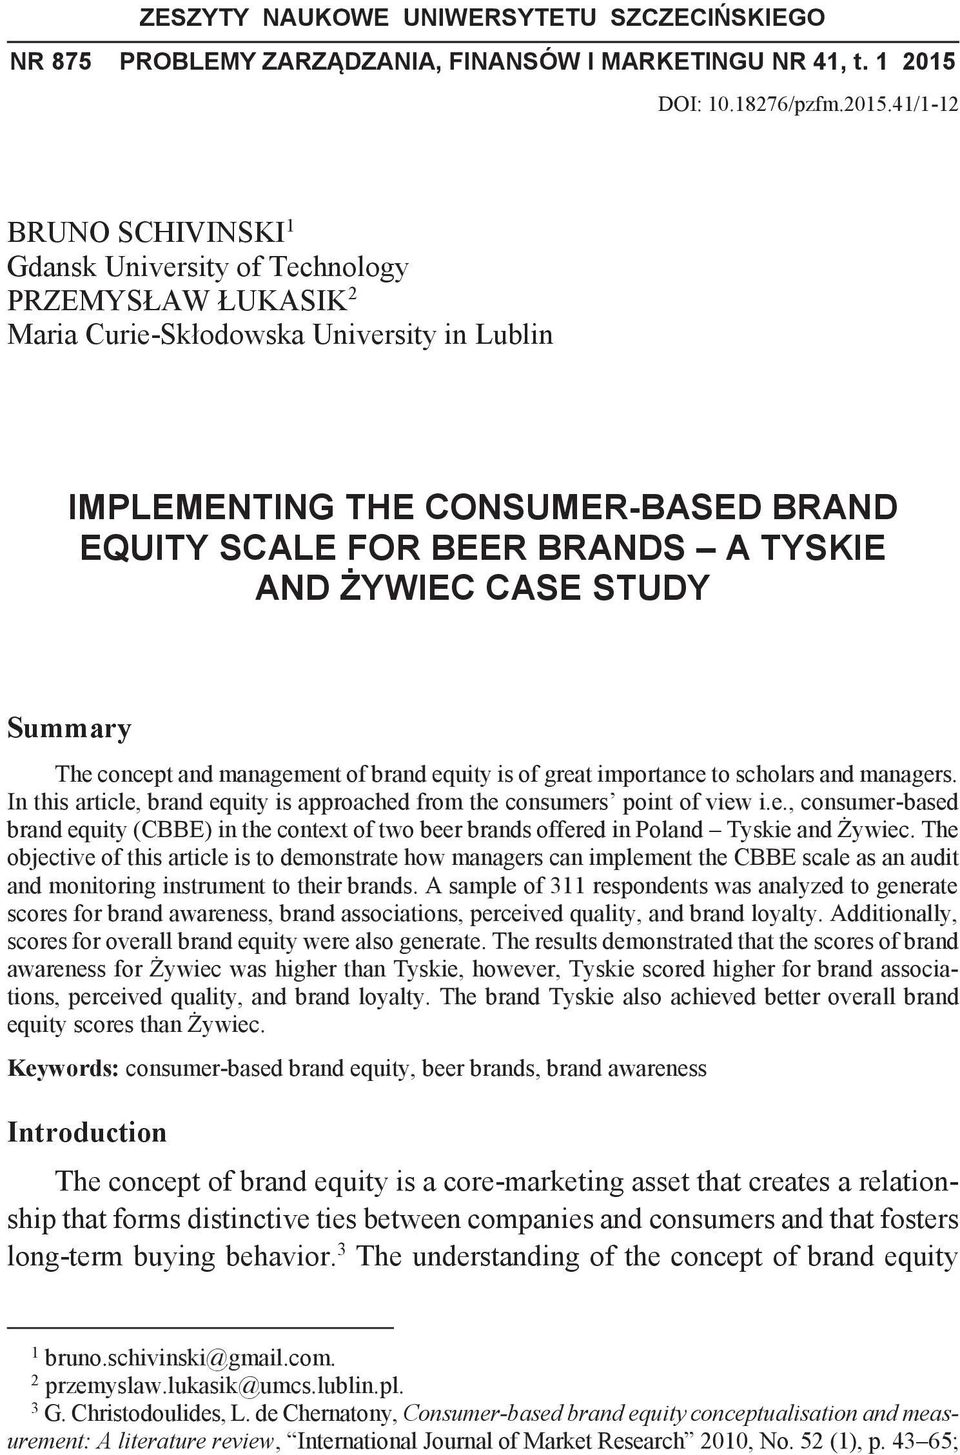 41/1-12 BRUNO SCHIVINSKI 1 Gdansk University of Technology PRZEMYSŁAW ŁUKASIK 2 Maria Curie-Skłodowska University in Lublin IMPLEMENTING THE CONSUMER-BASED BRAND EQUITY SCALE FOR BEER BRANDS A TYSKIE